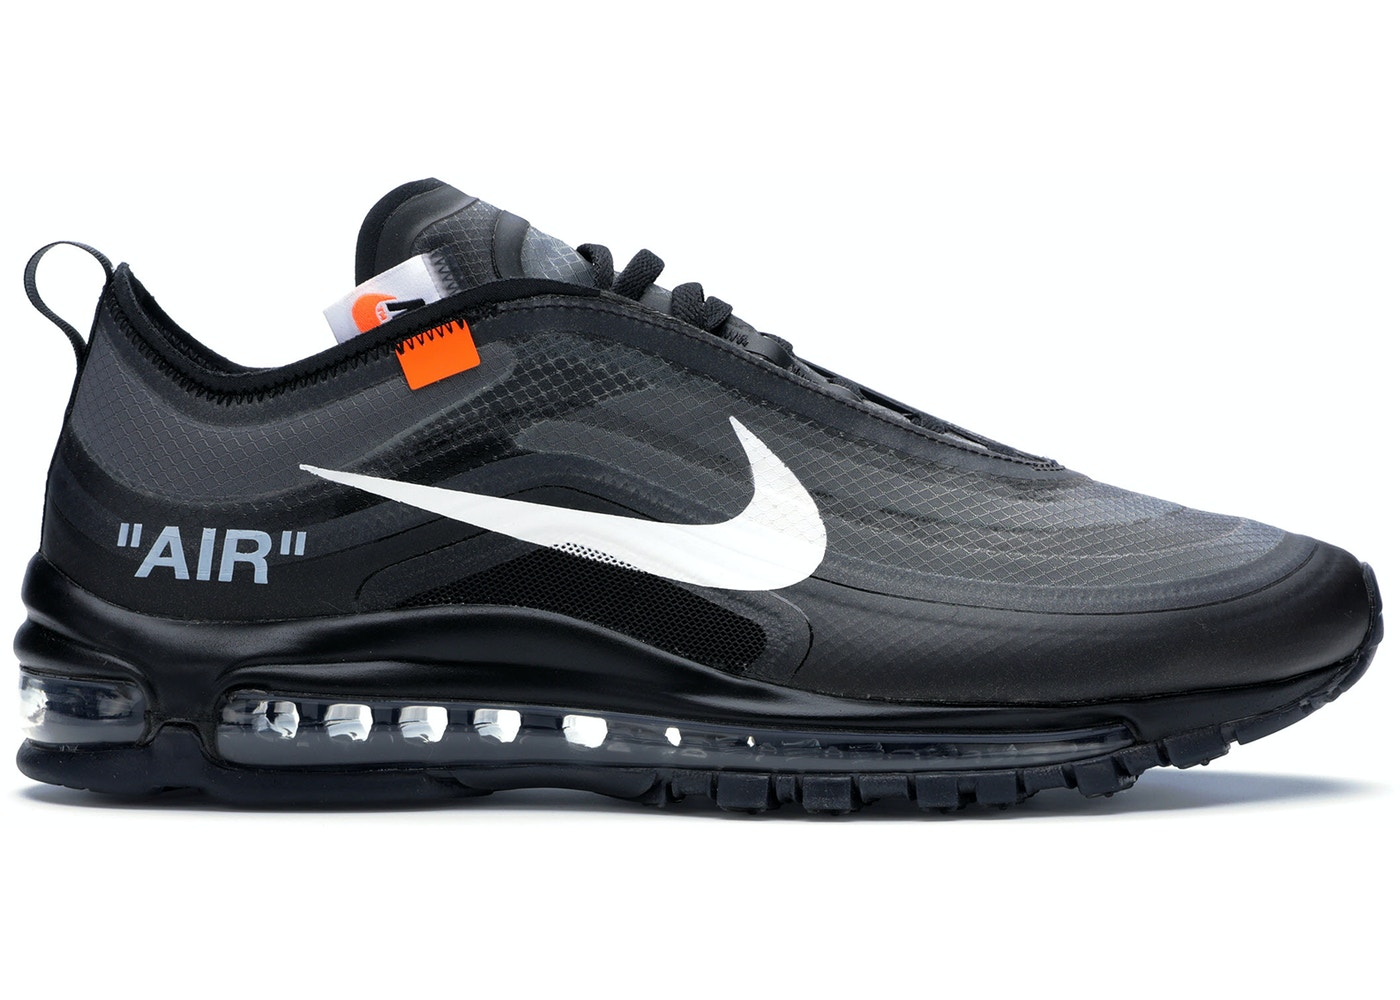 Air Max 97 Off-White Black - AJ4585-001 cbc755e25